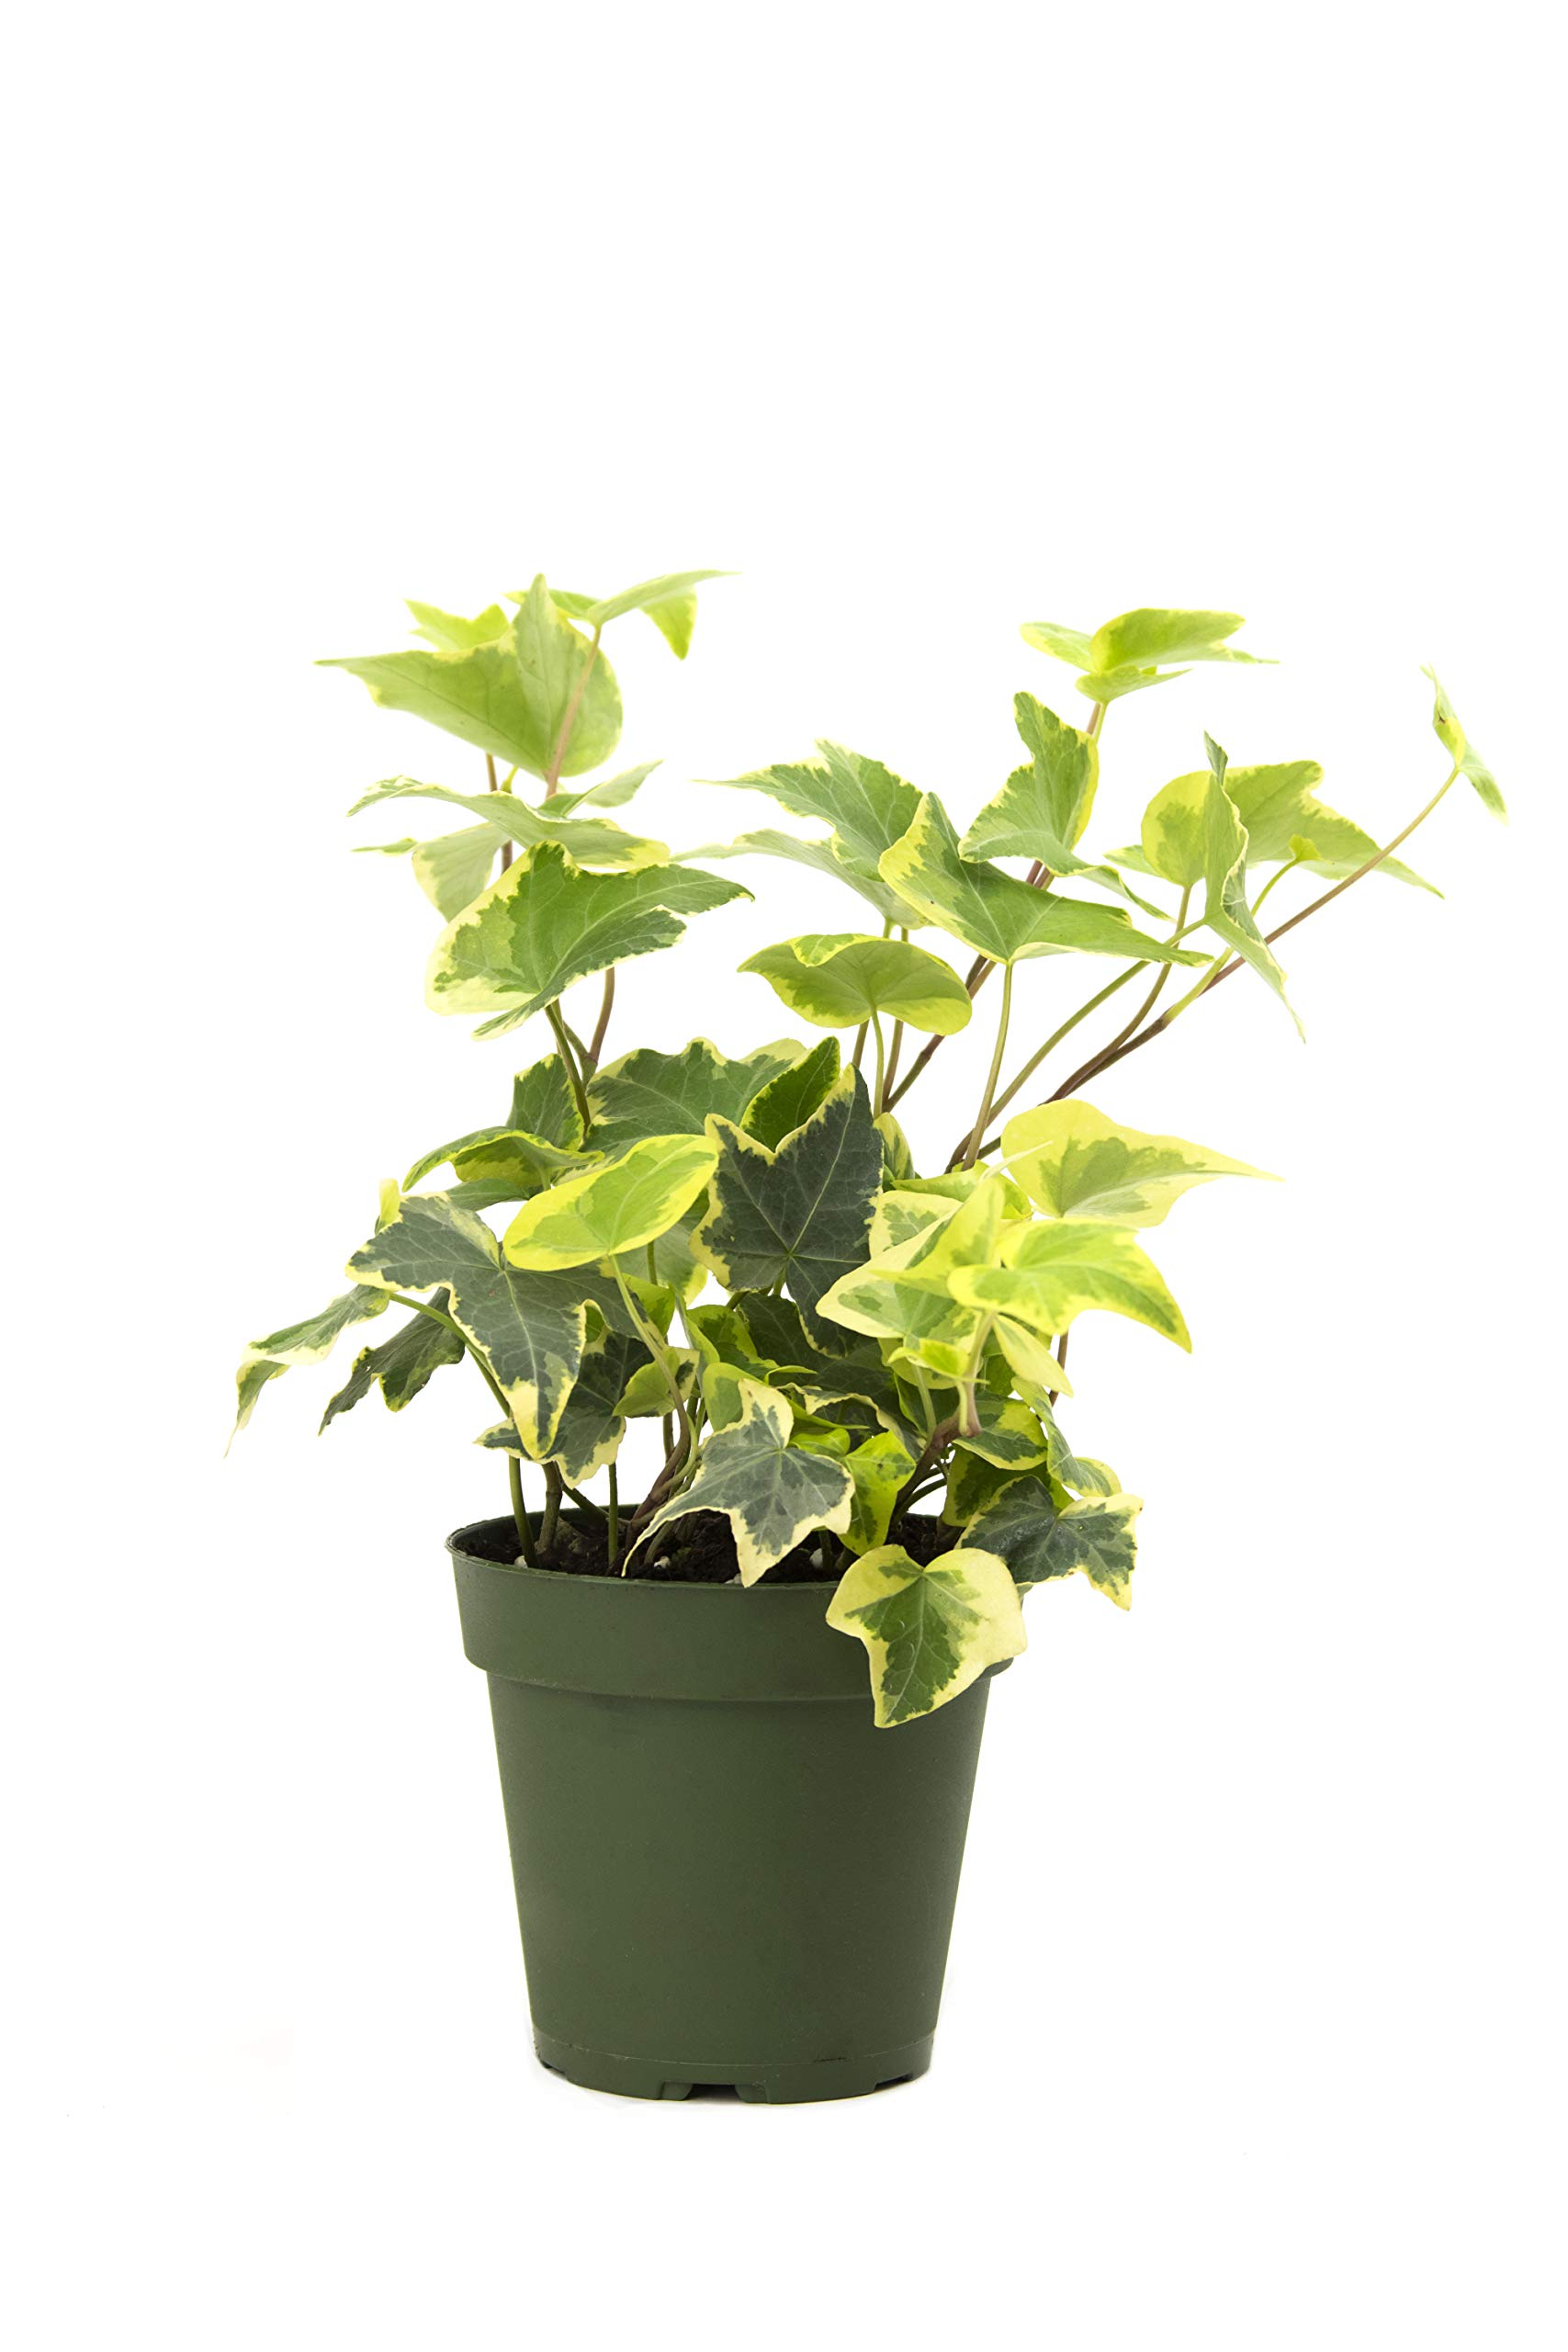 Burpee's Hedera (Ivy Variegated Gold | Indirect High Light, Easy Care House Plant | 4'' Pot